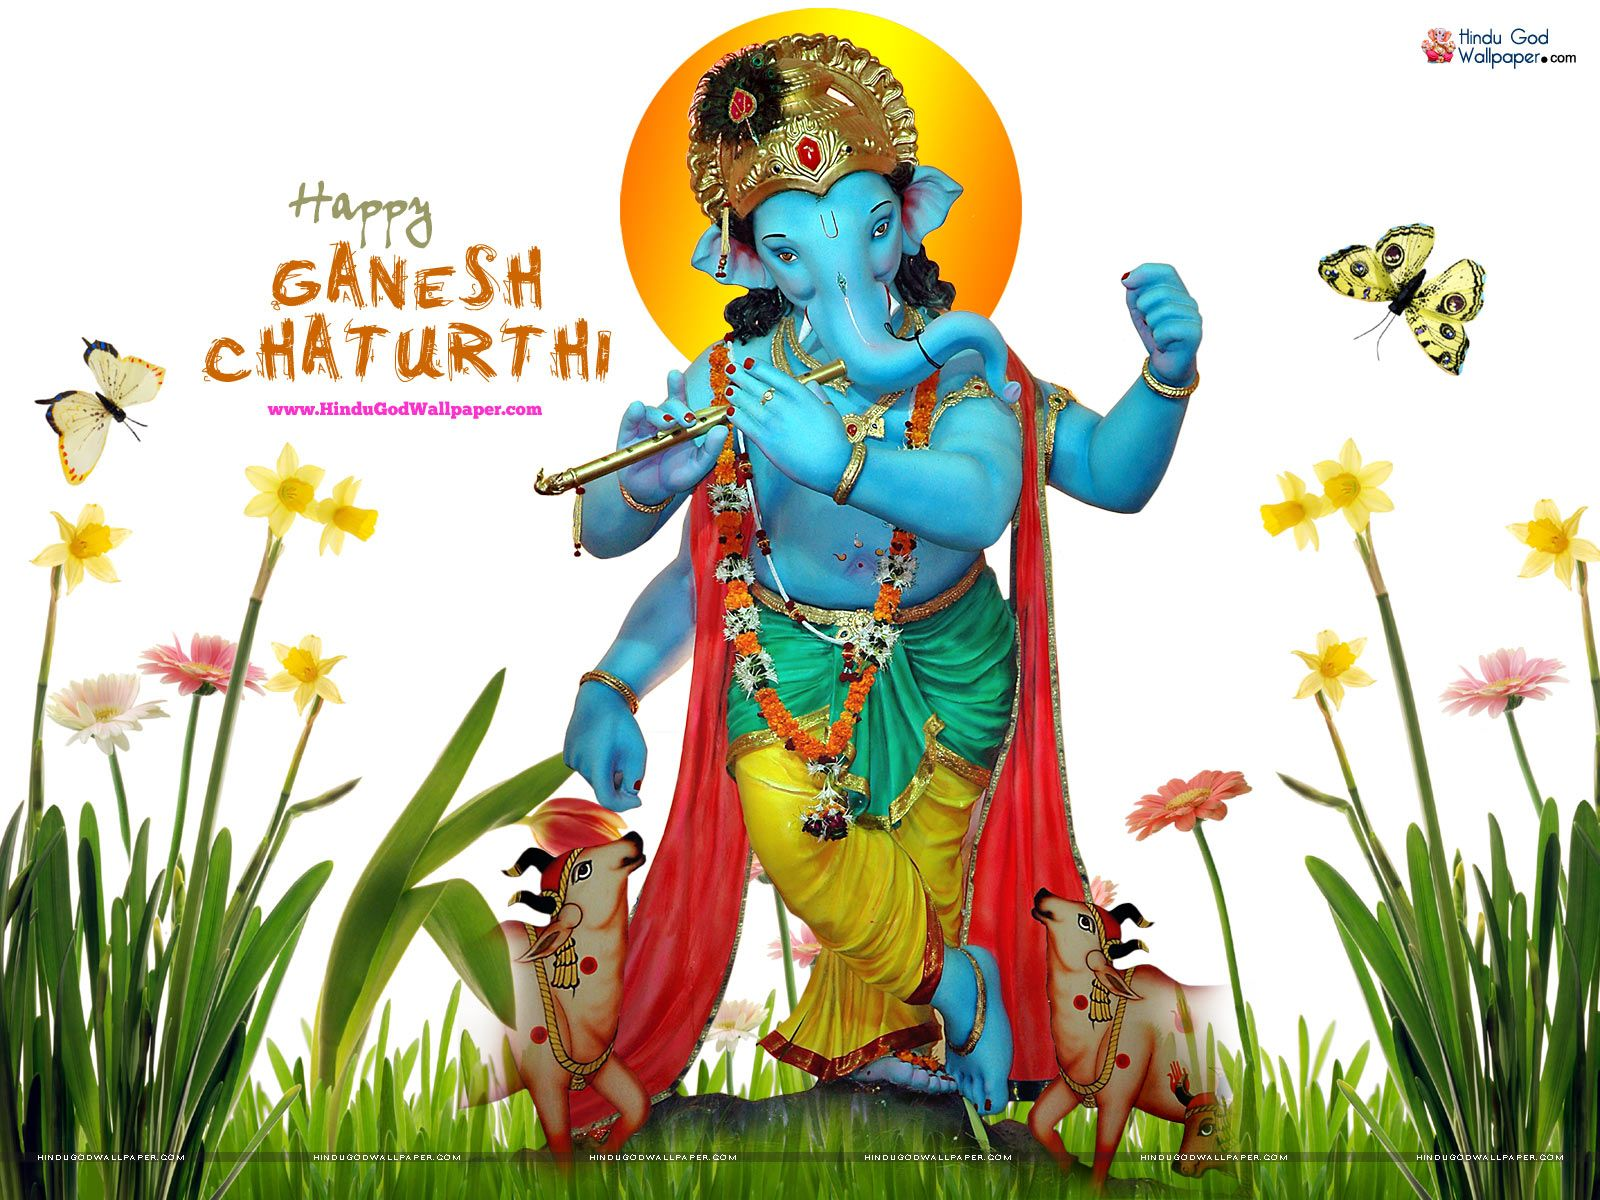 Ganesh Chaturthi Live HD Wallpapers Free Download